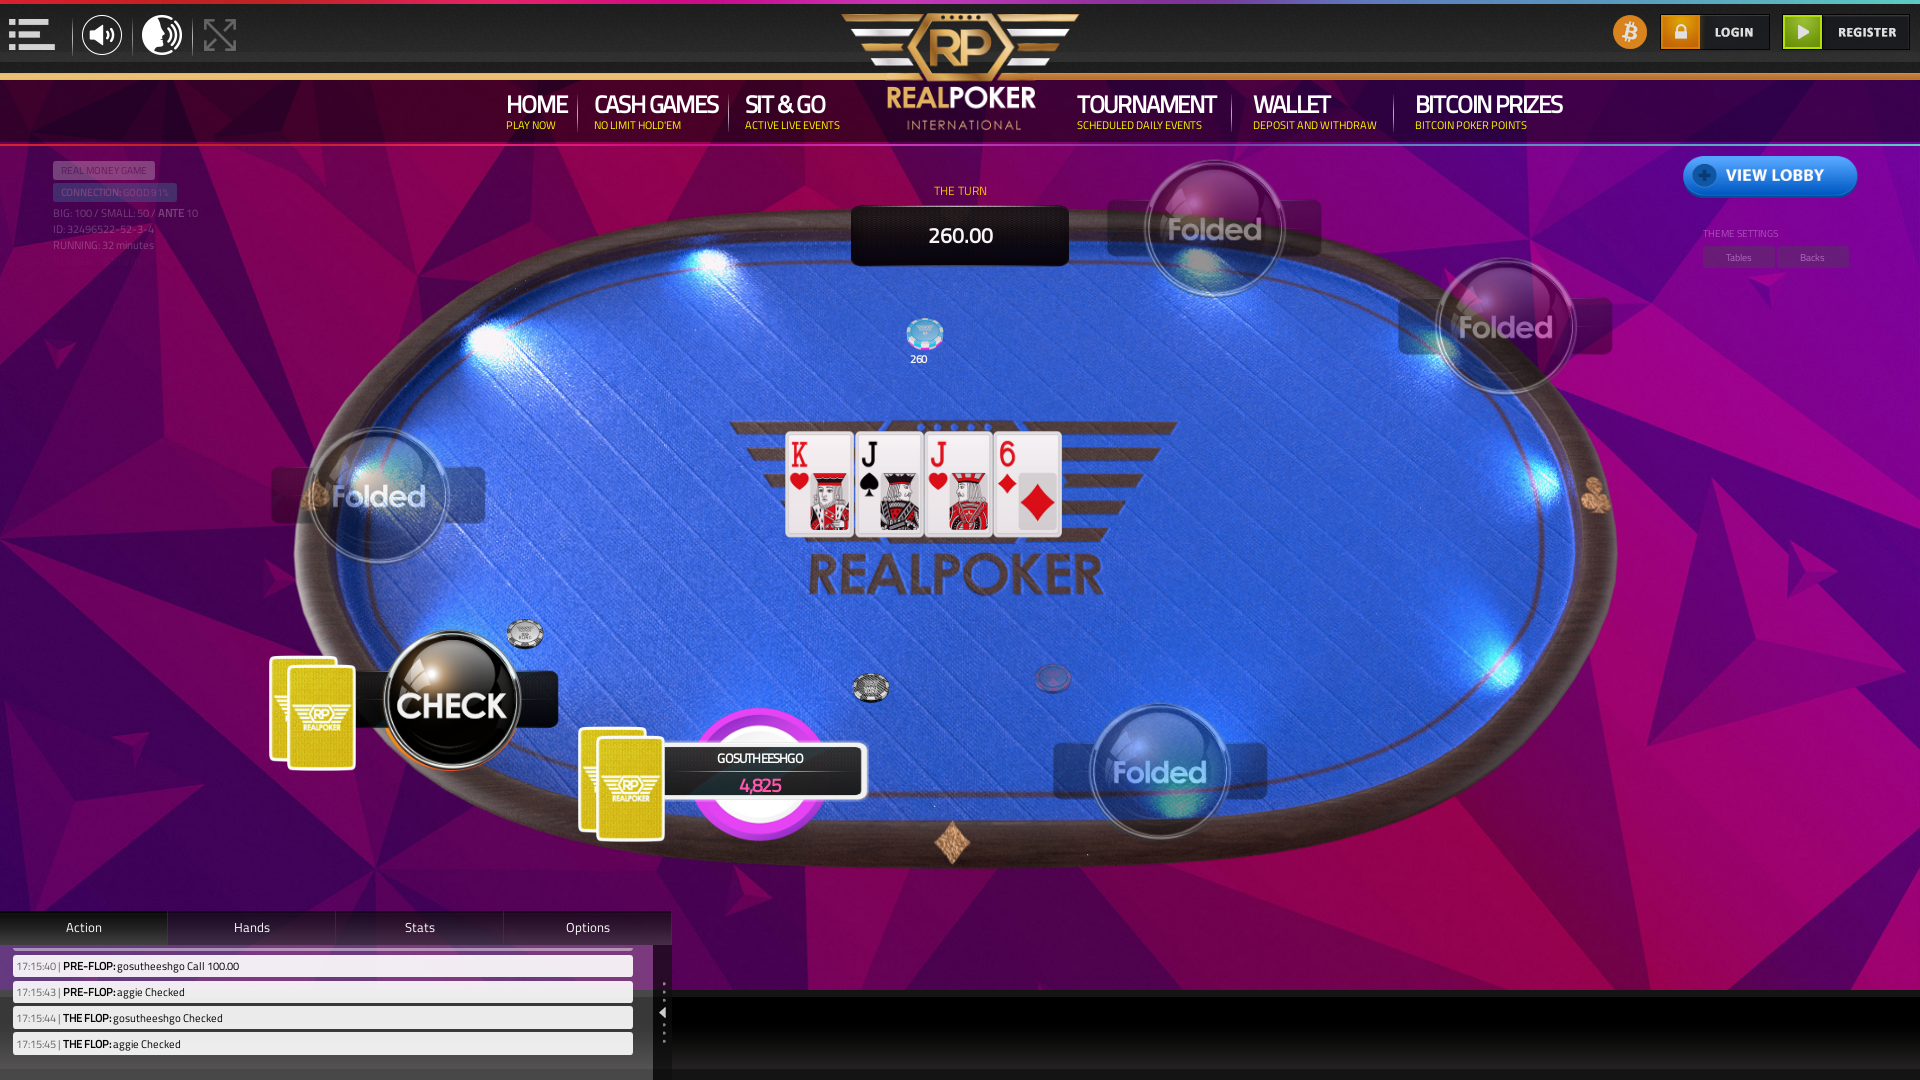 10 player poker in the 32nd minute